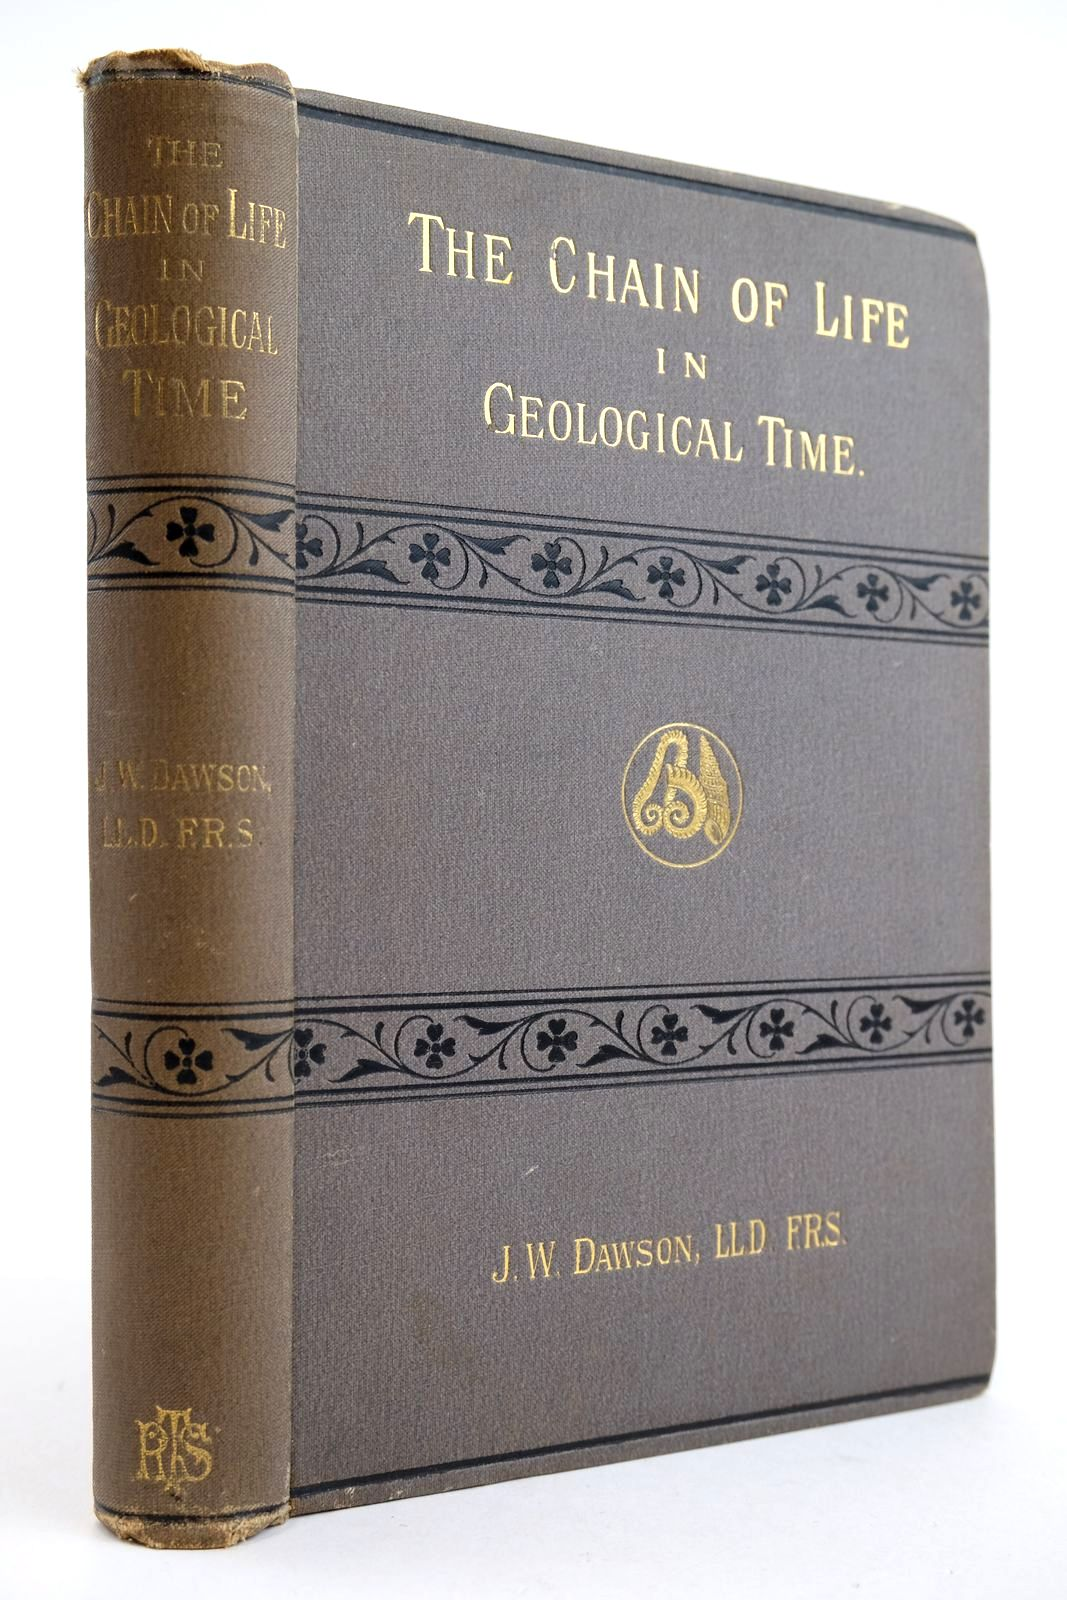 Photo of THE CHAIN OF LIFE IN GEOLOGICAL TIME written by Dawson, J.W. published by The Religious Tract Society (STOCK CODE: 2132740)  for sale by Stella & Rose's Books